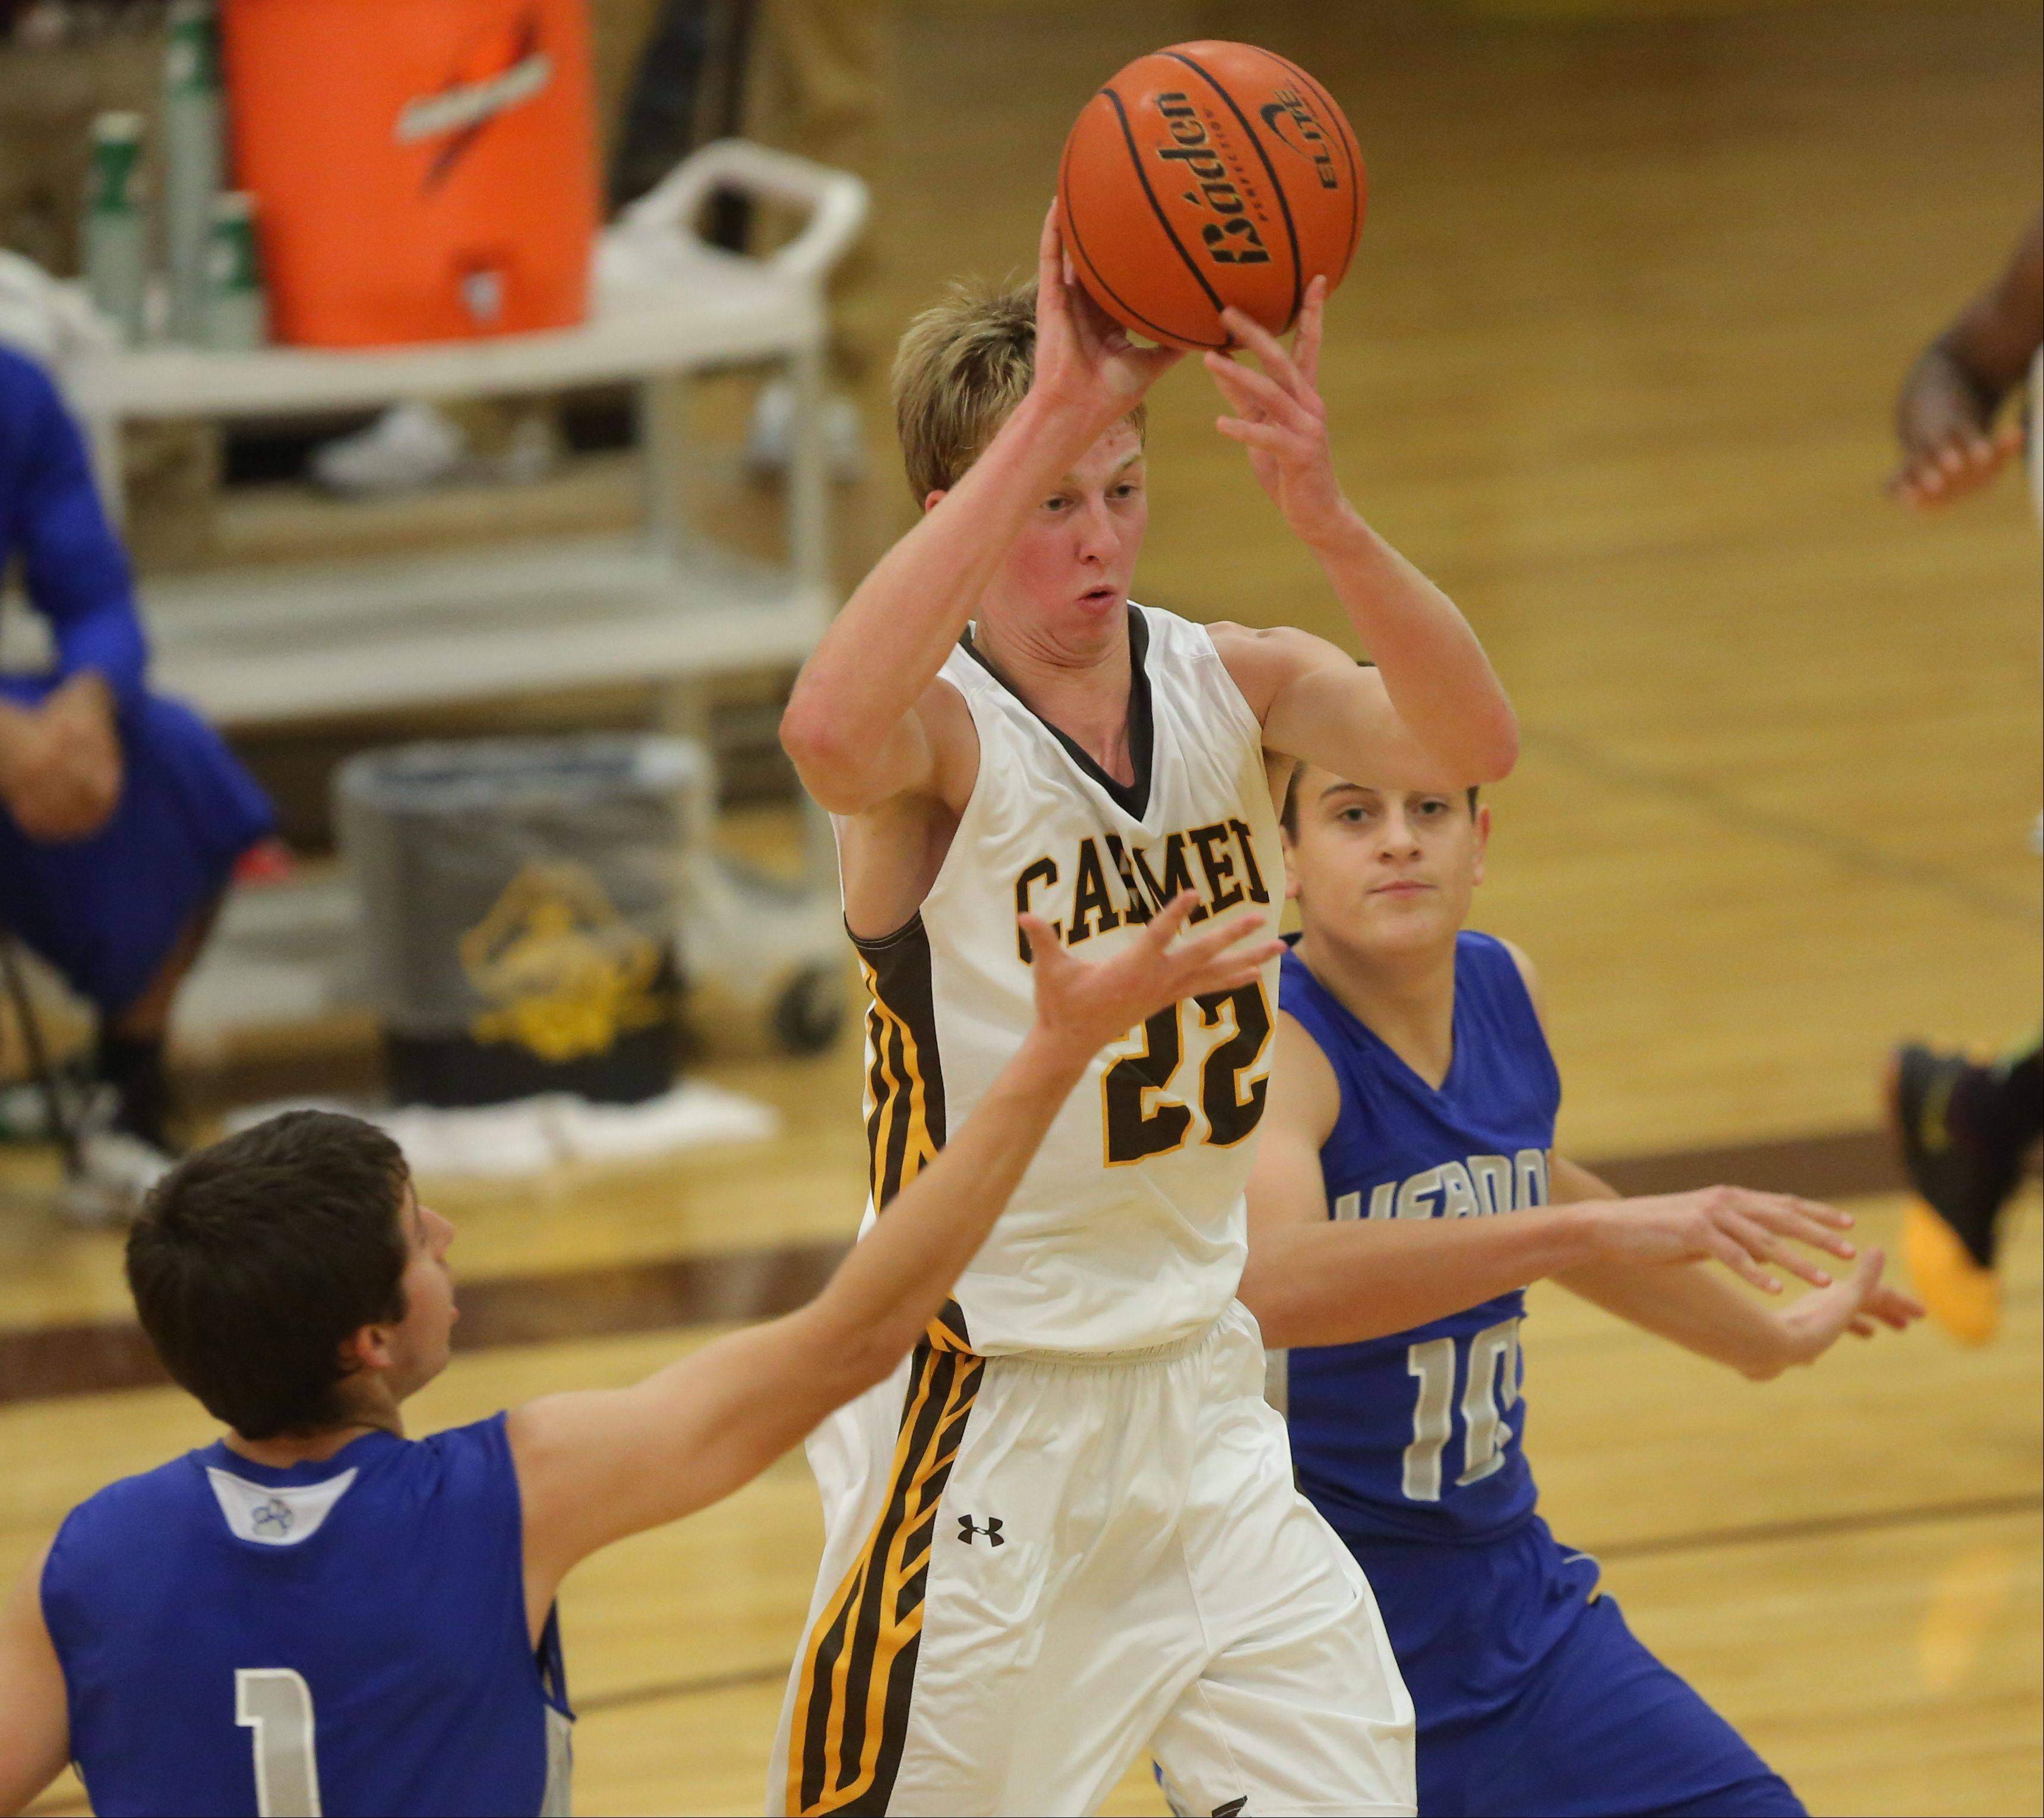 Images from the Vernon Hills vs. Carmel boys basketball game on Wednesday, Dec. 4 in Mundelein.